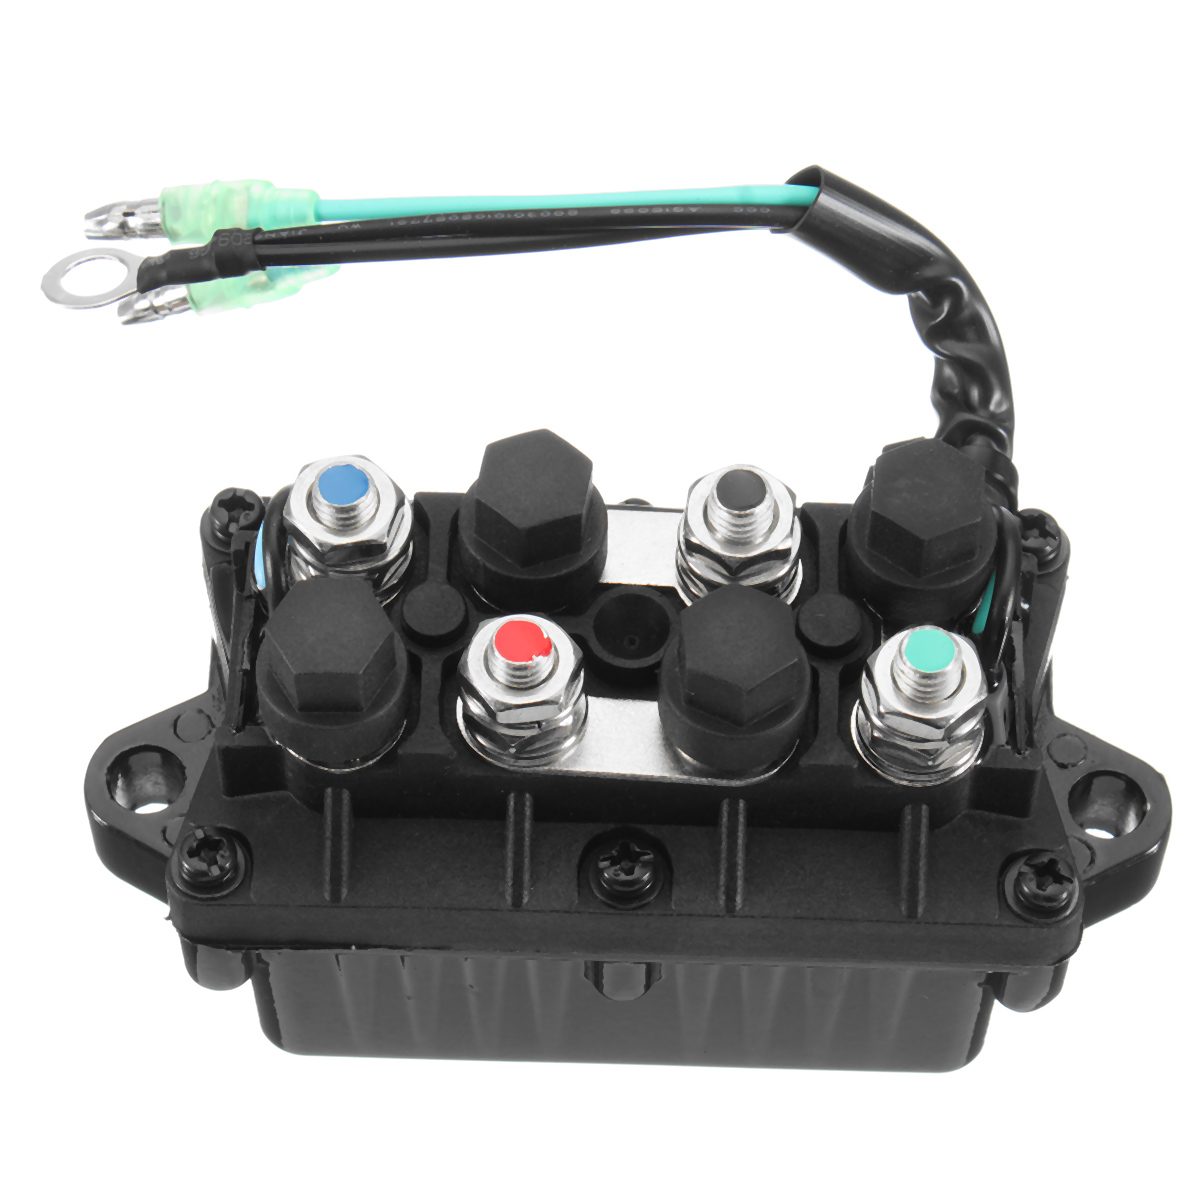 Motor Power Trim & Relay 3 Pin For Yamaha 30-90 HP 6H1-